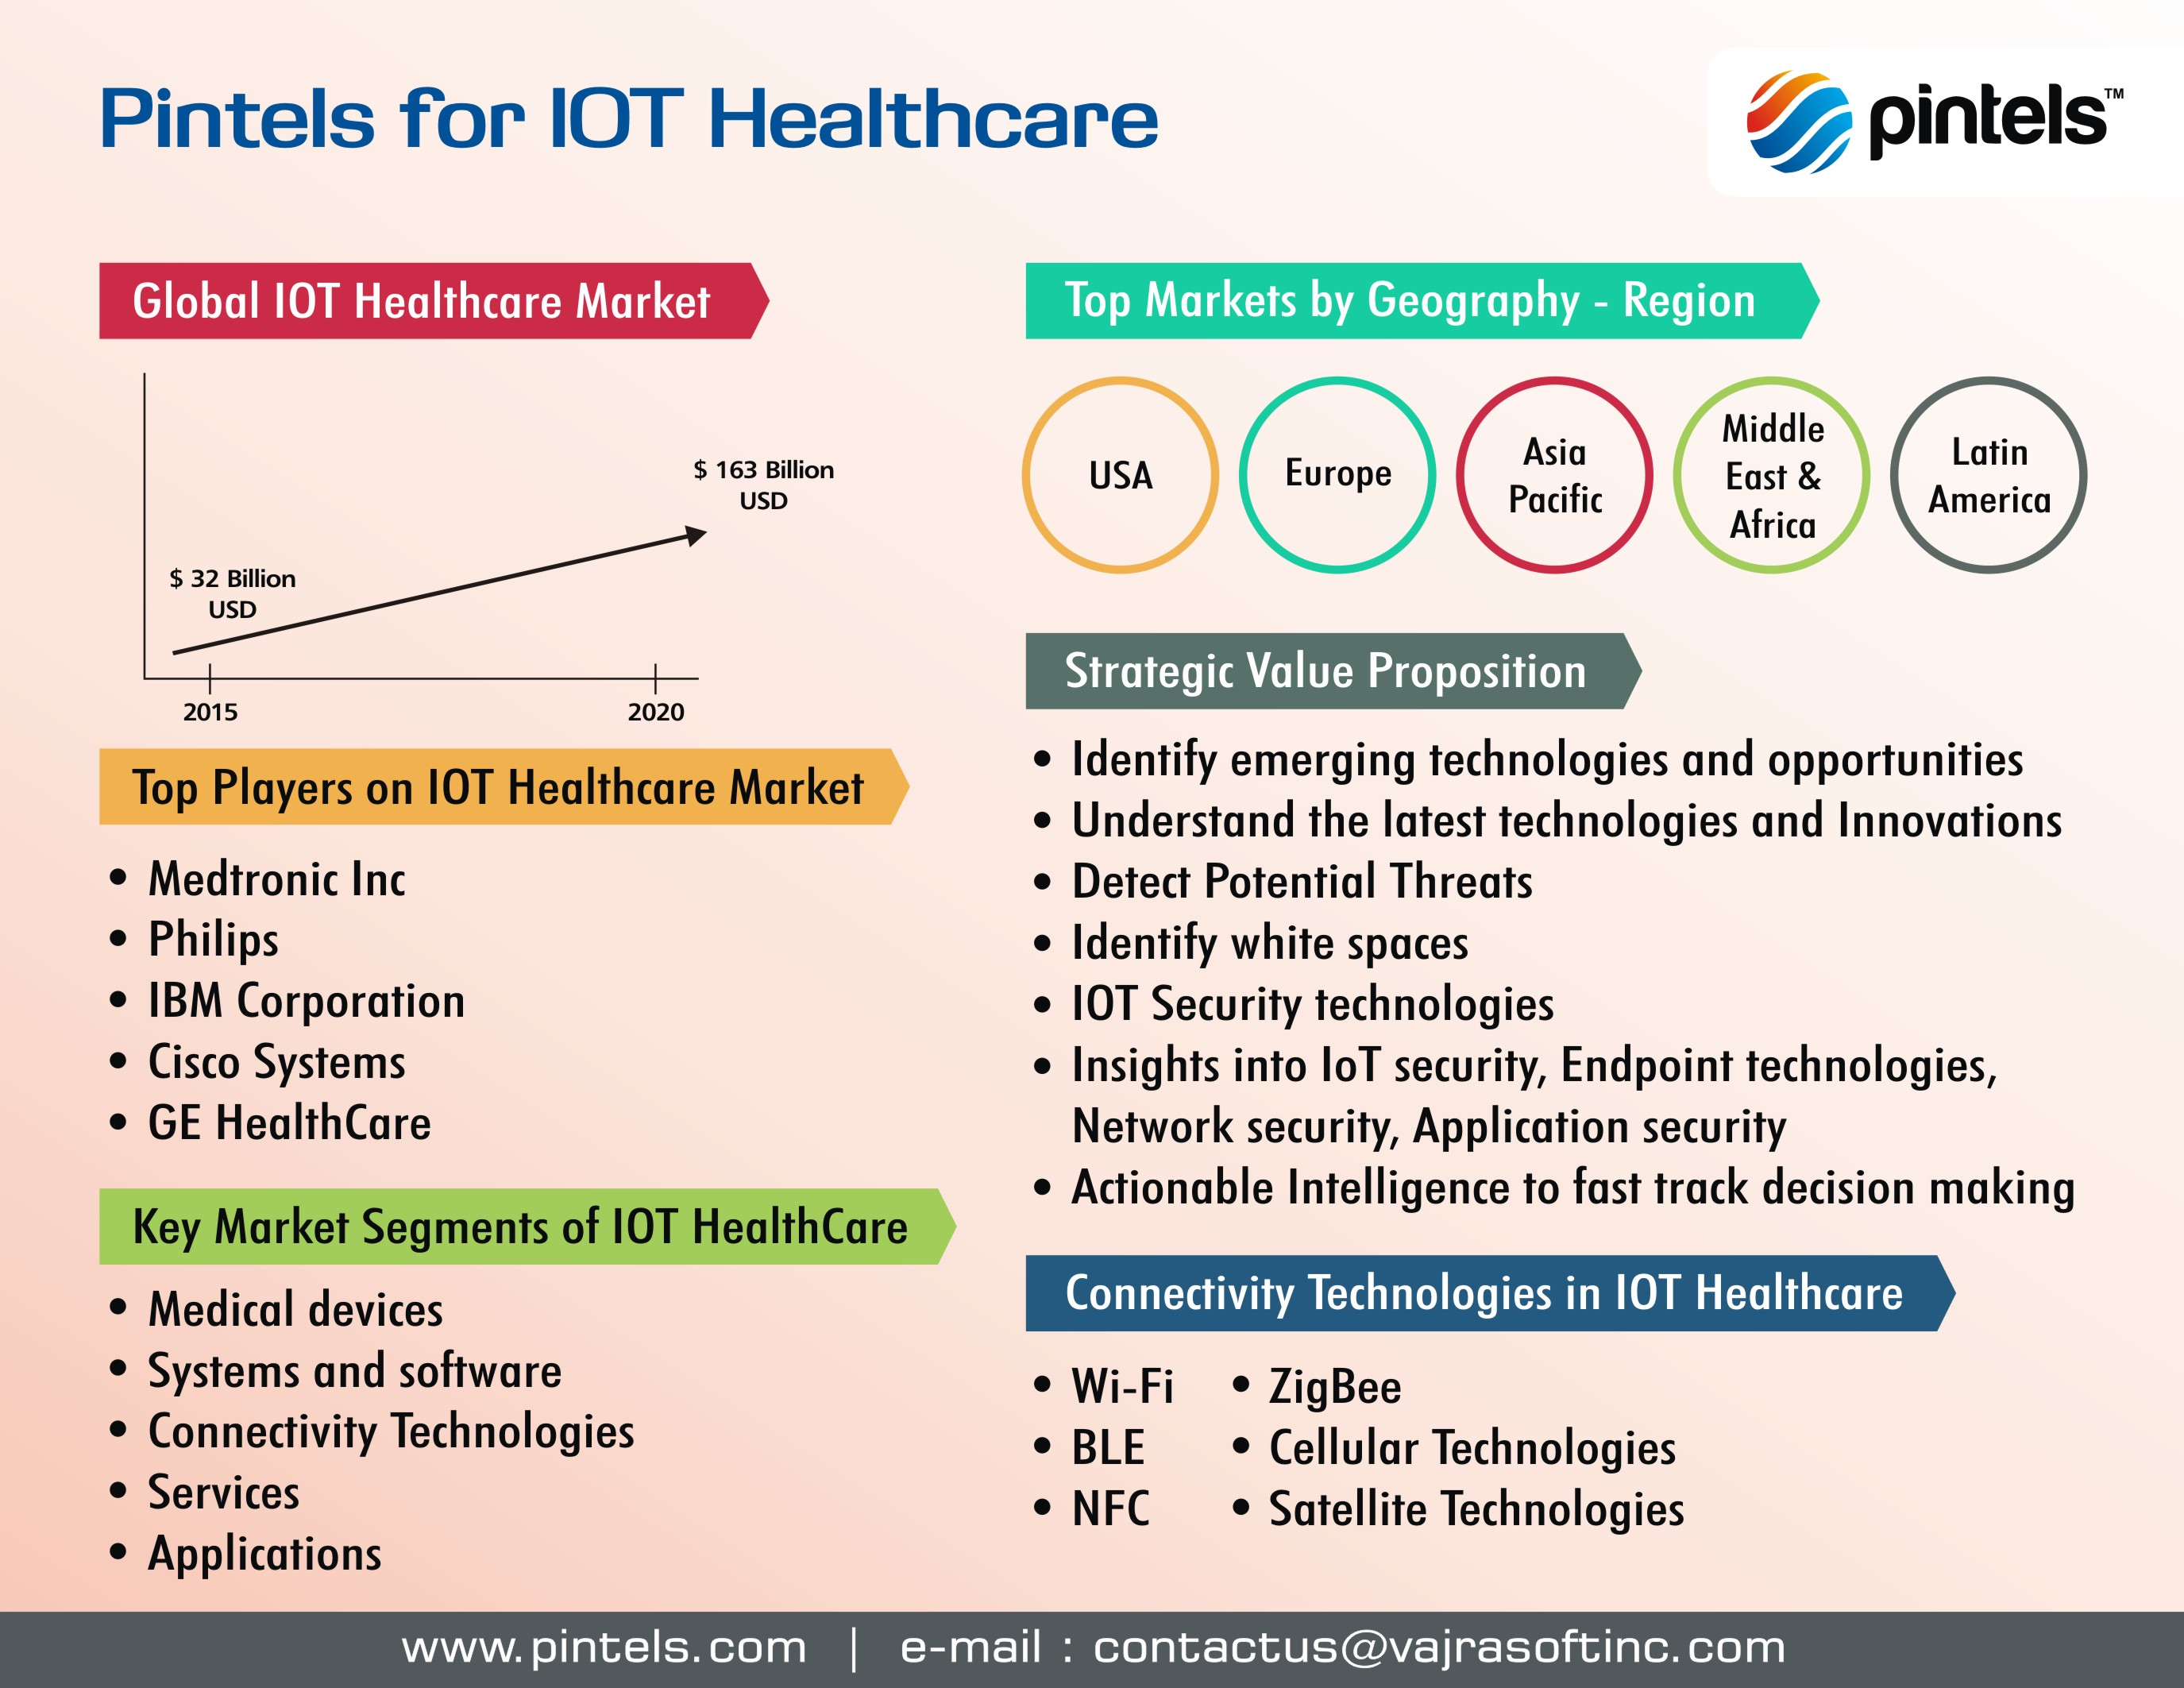 IoT Healthcare Innovations